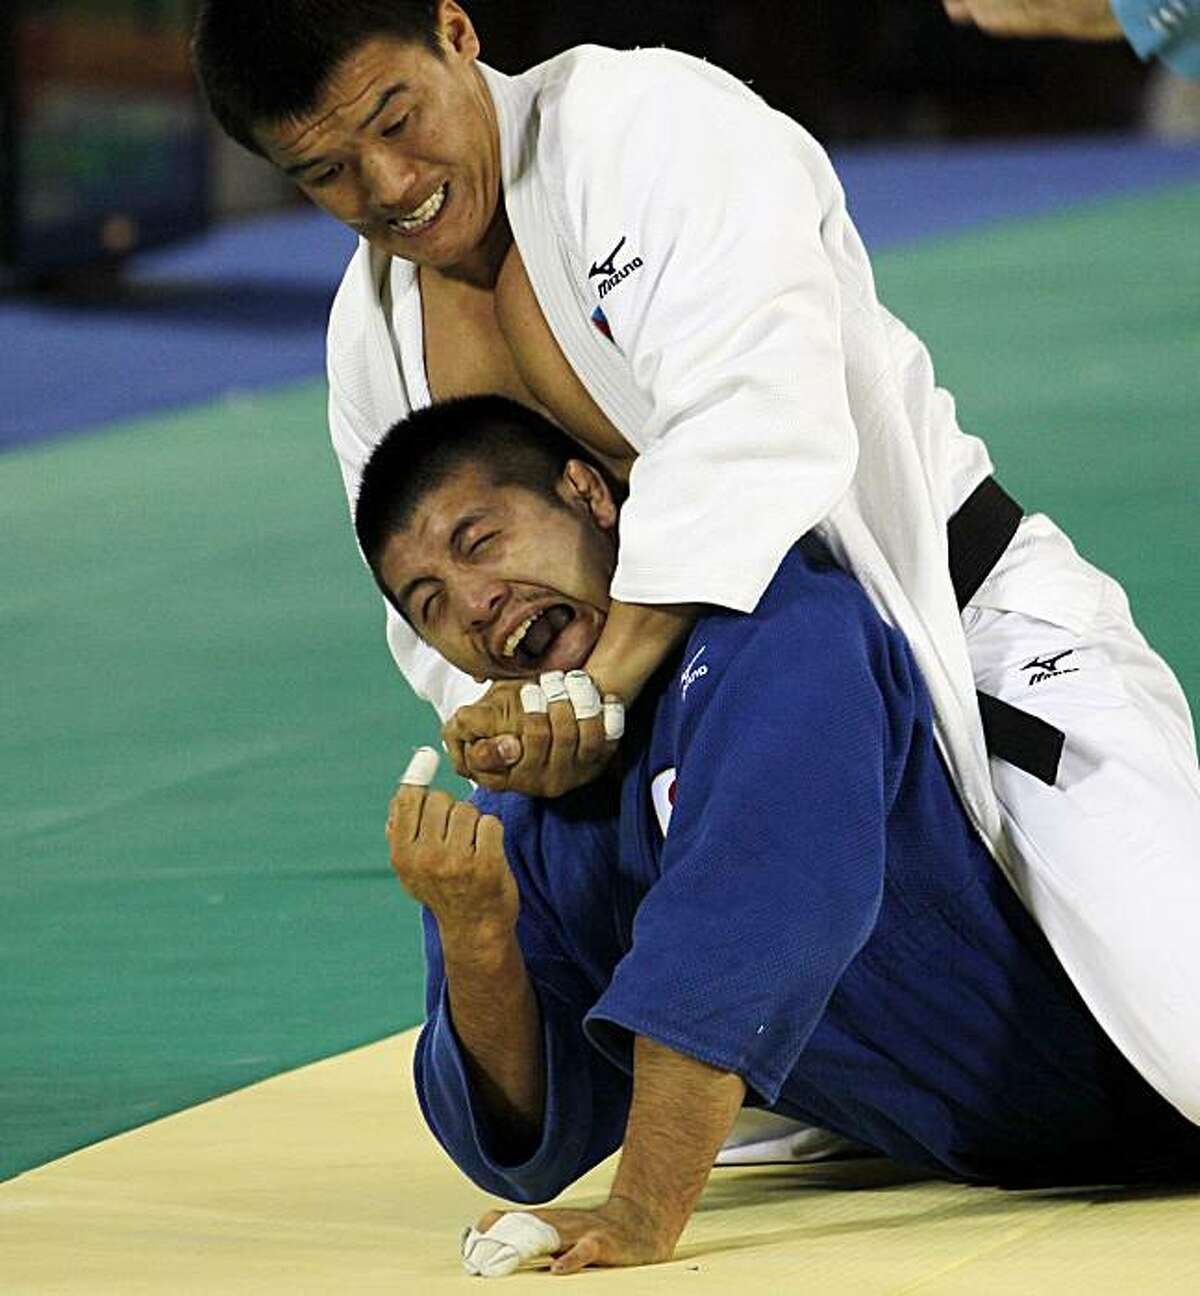 Japan's Masahiro Takamatsu bottom, reacts as he is held by Mongolia's Uuganbaatar Otgonbaatar during a bronze medal match for the judo -81kg competitions at the 16th Asian Games in Guangzhou, China, Sunday, Nov. 14, 2010.